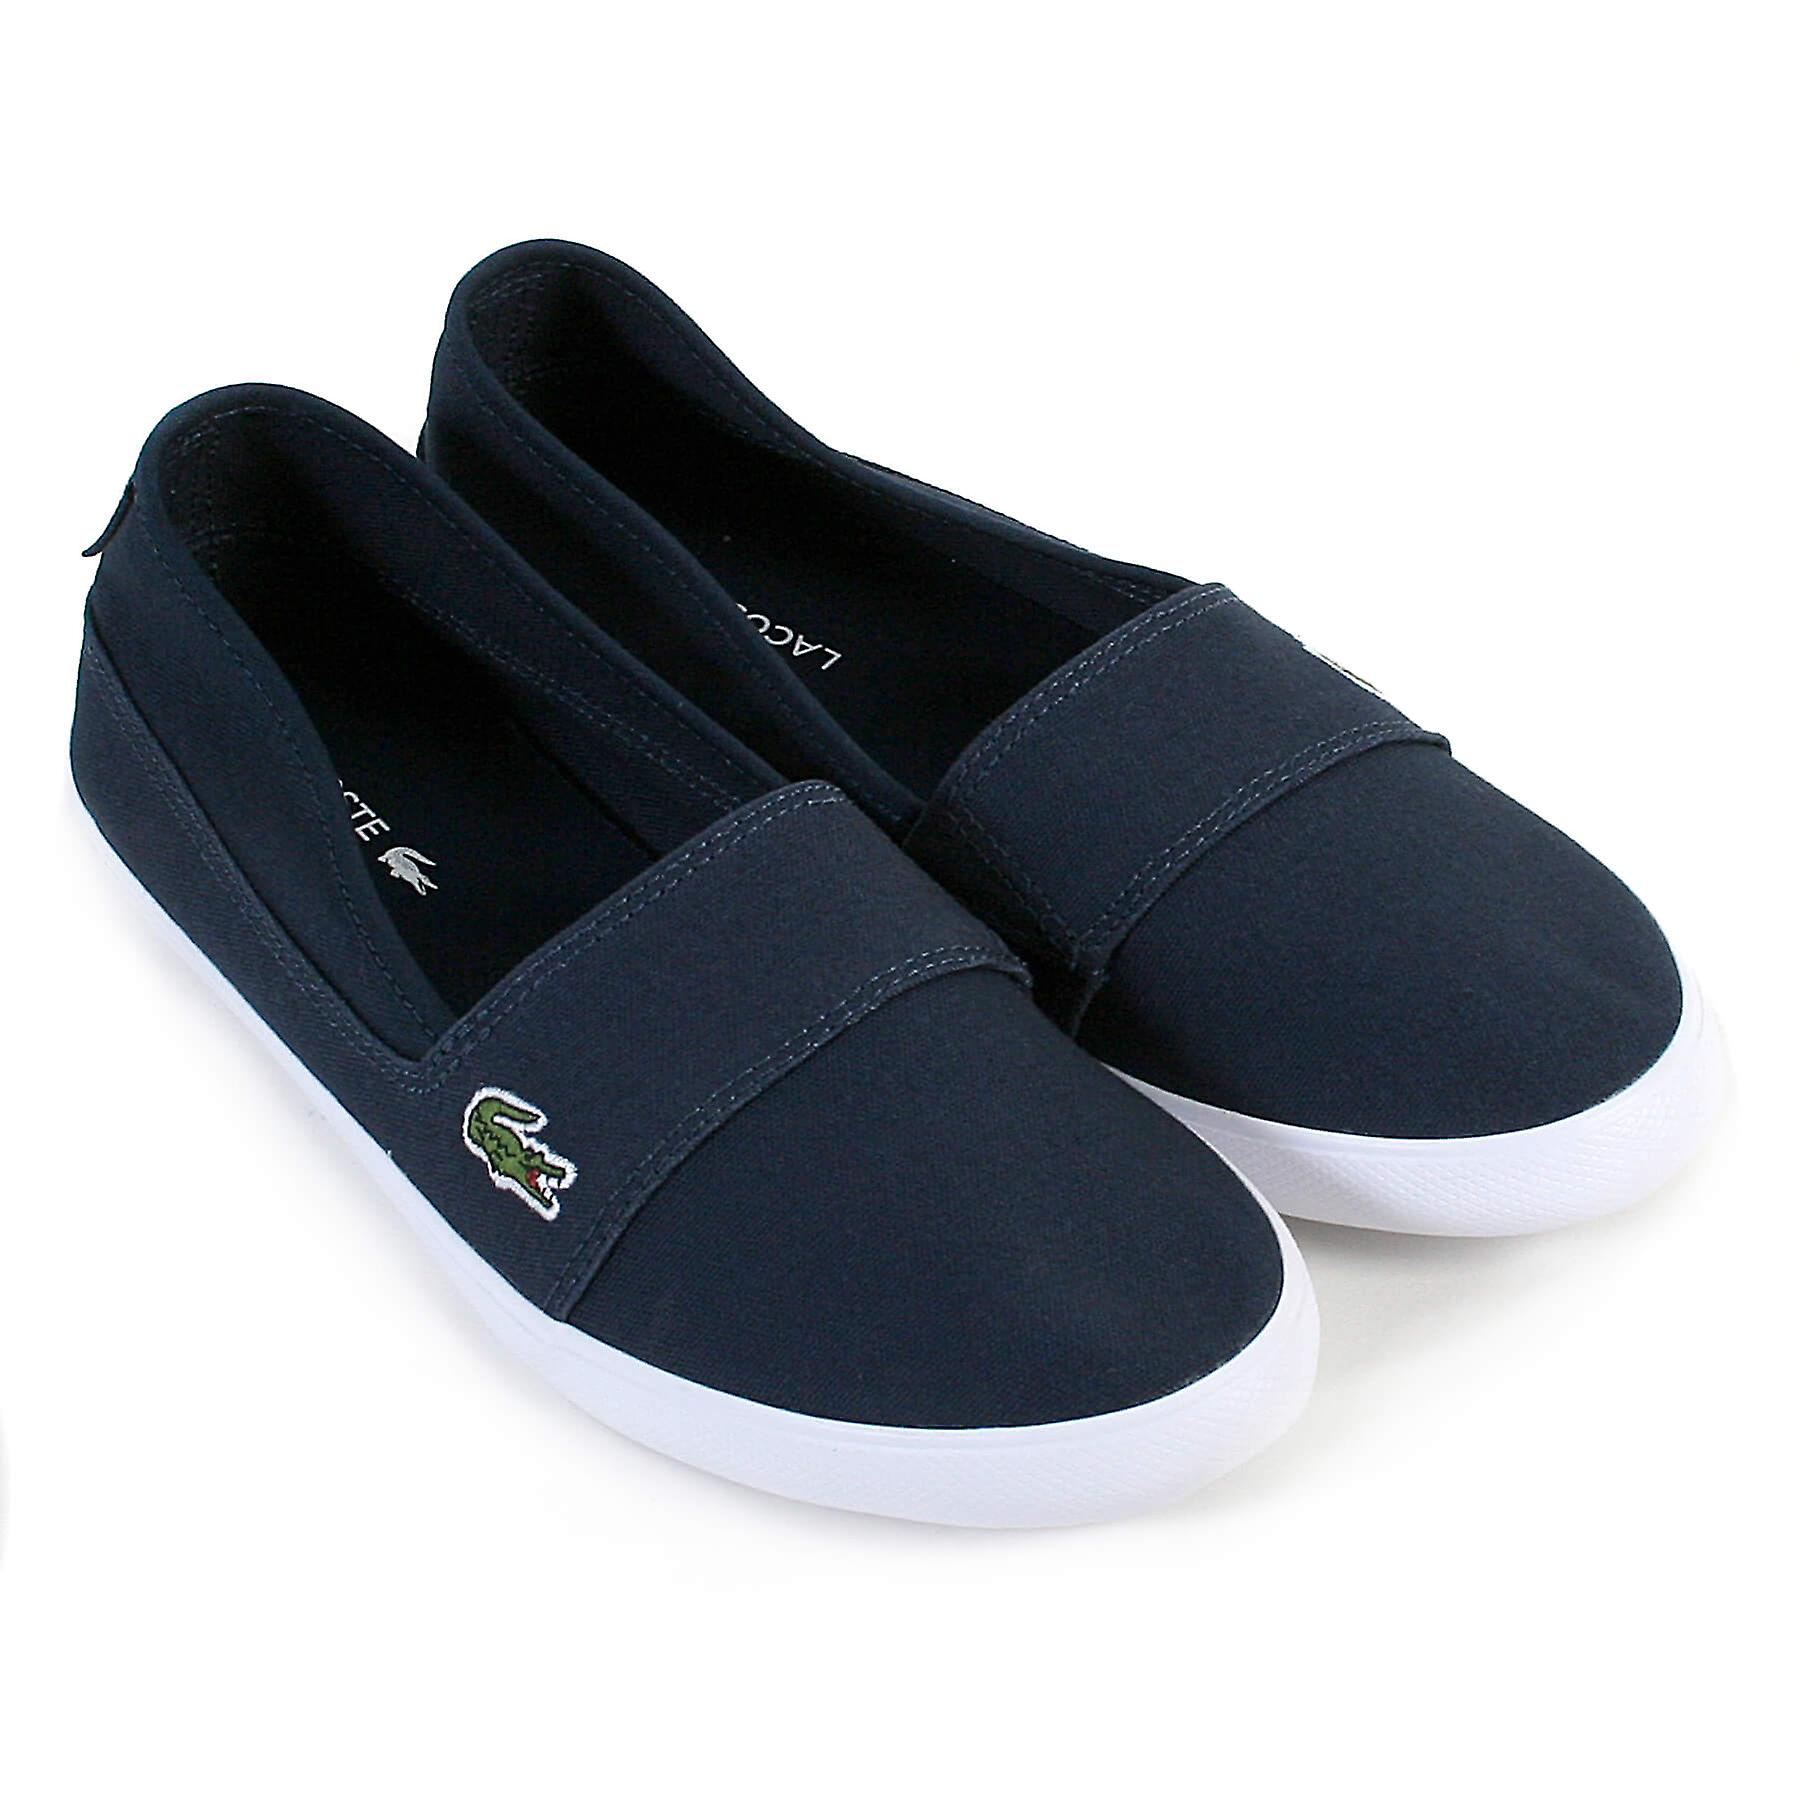 05347b4d8f2 Lacoste Women s Marice BL 2 Canvas Slip On Espadrille Navy